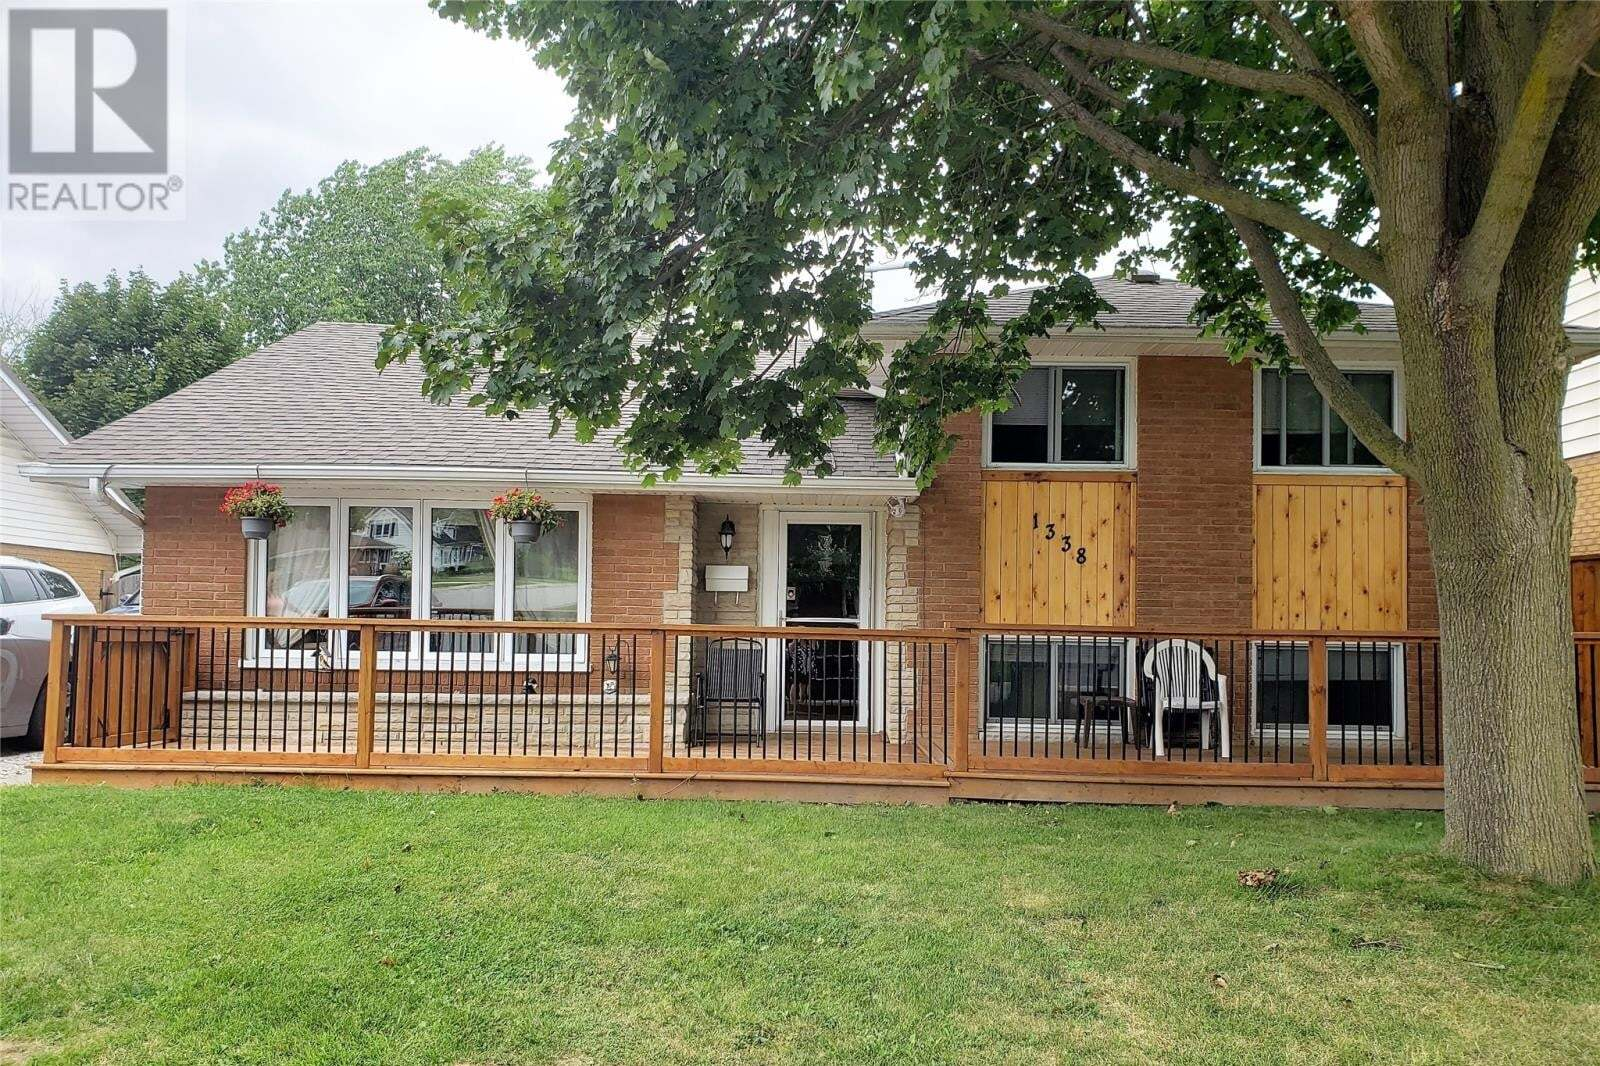 House for sale at 1338 Elgin St Wallaceburg Ontario - MLS: 20010111